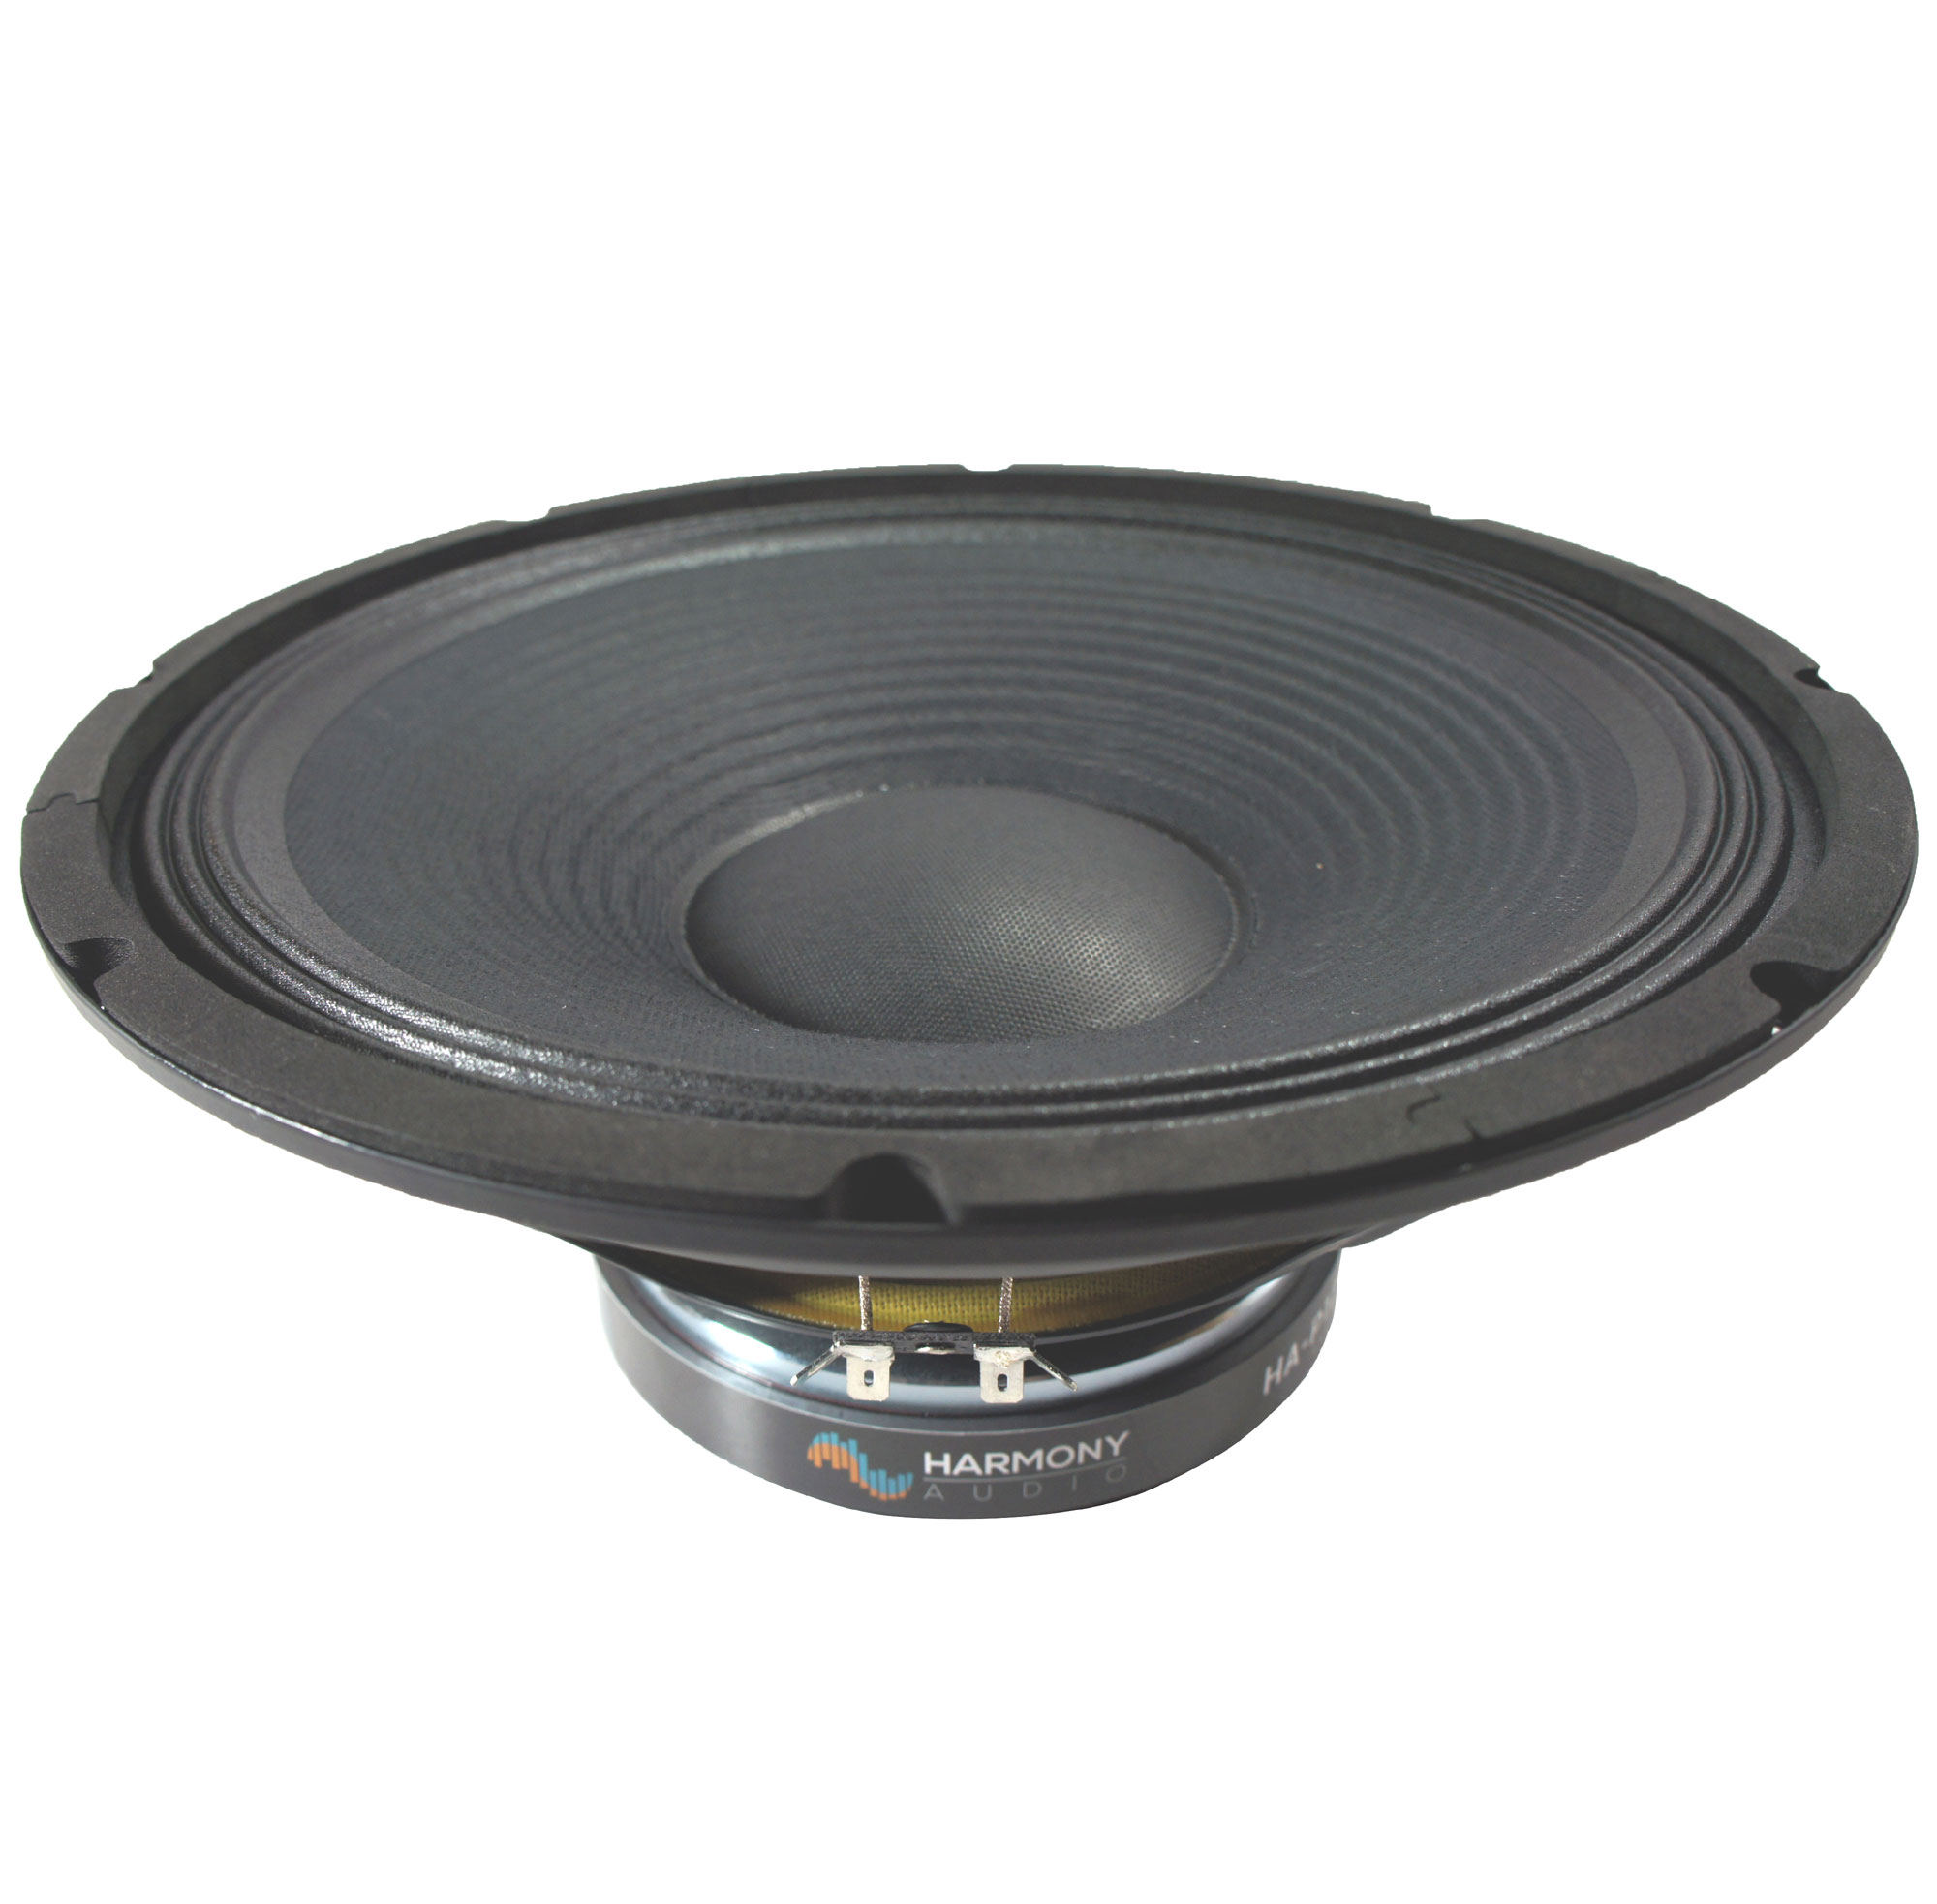 "Harmony HA-P12WS8 Replacement 12"" PA Speaker 8 Ohm Woofer for EV ZLX-12P"